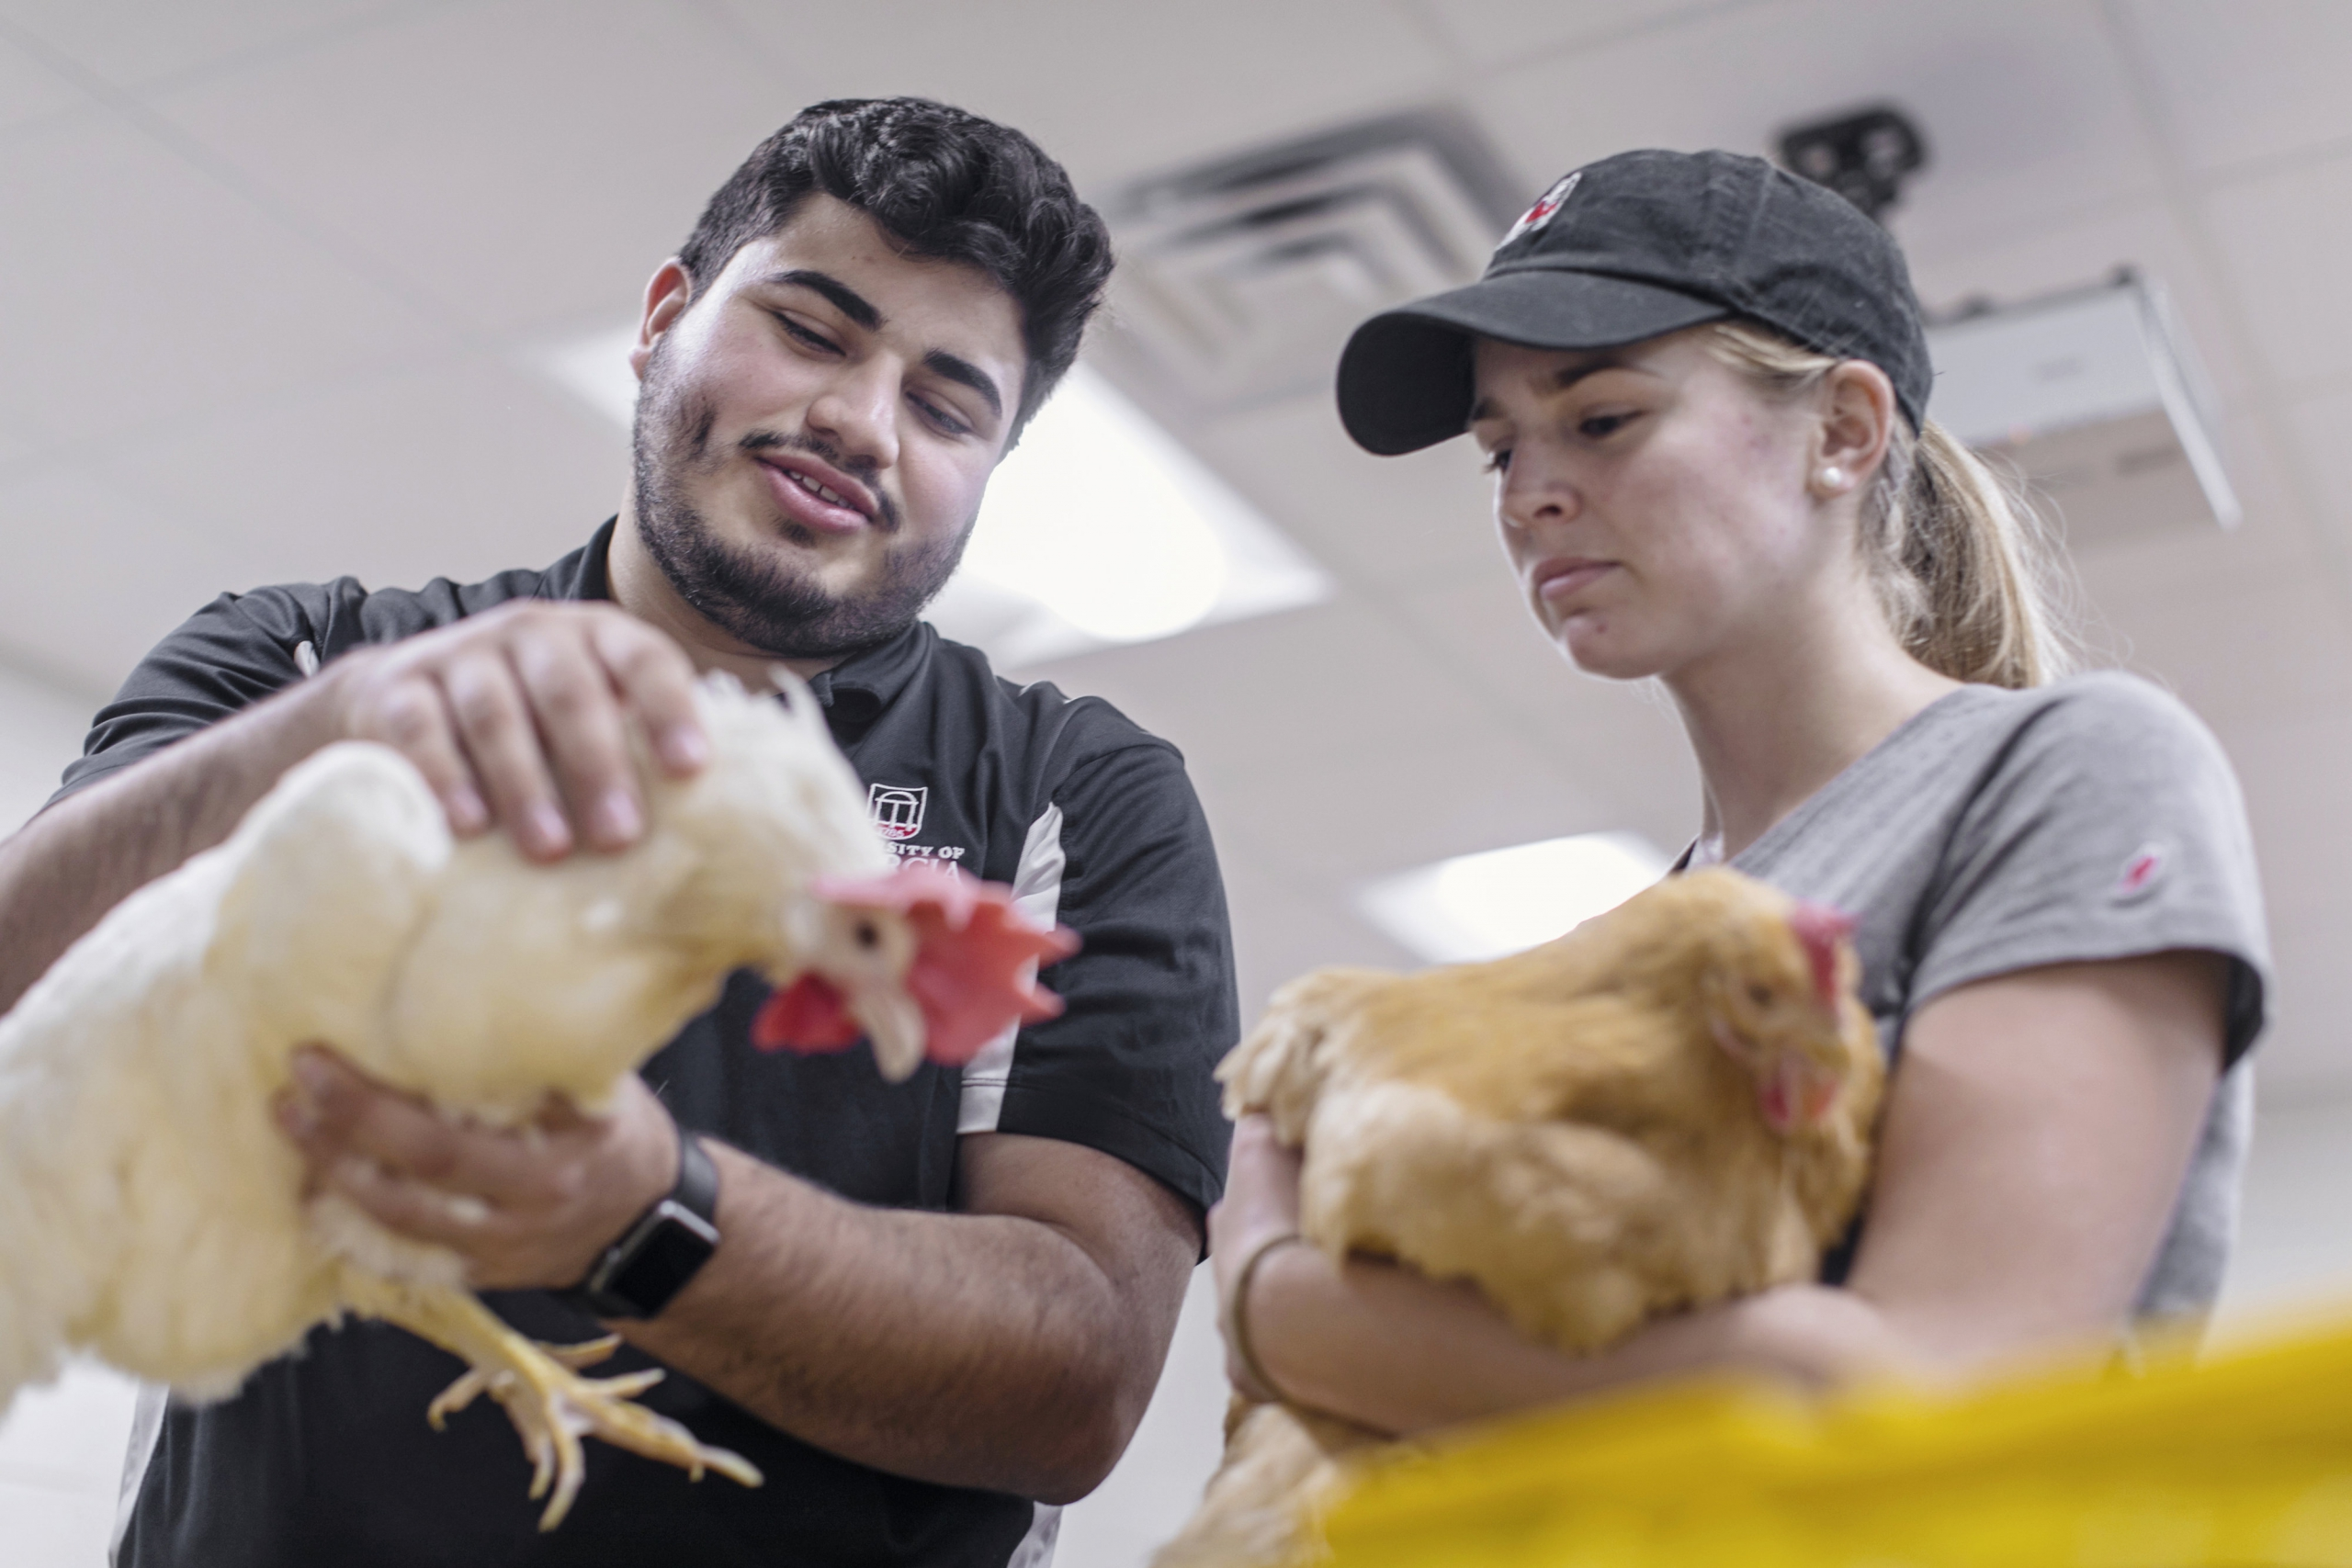 Poultry Science students work with chickens